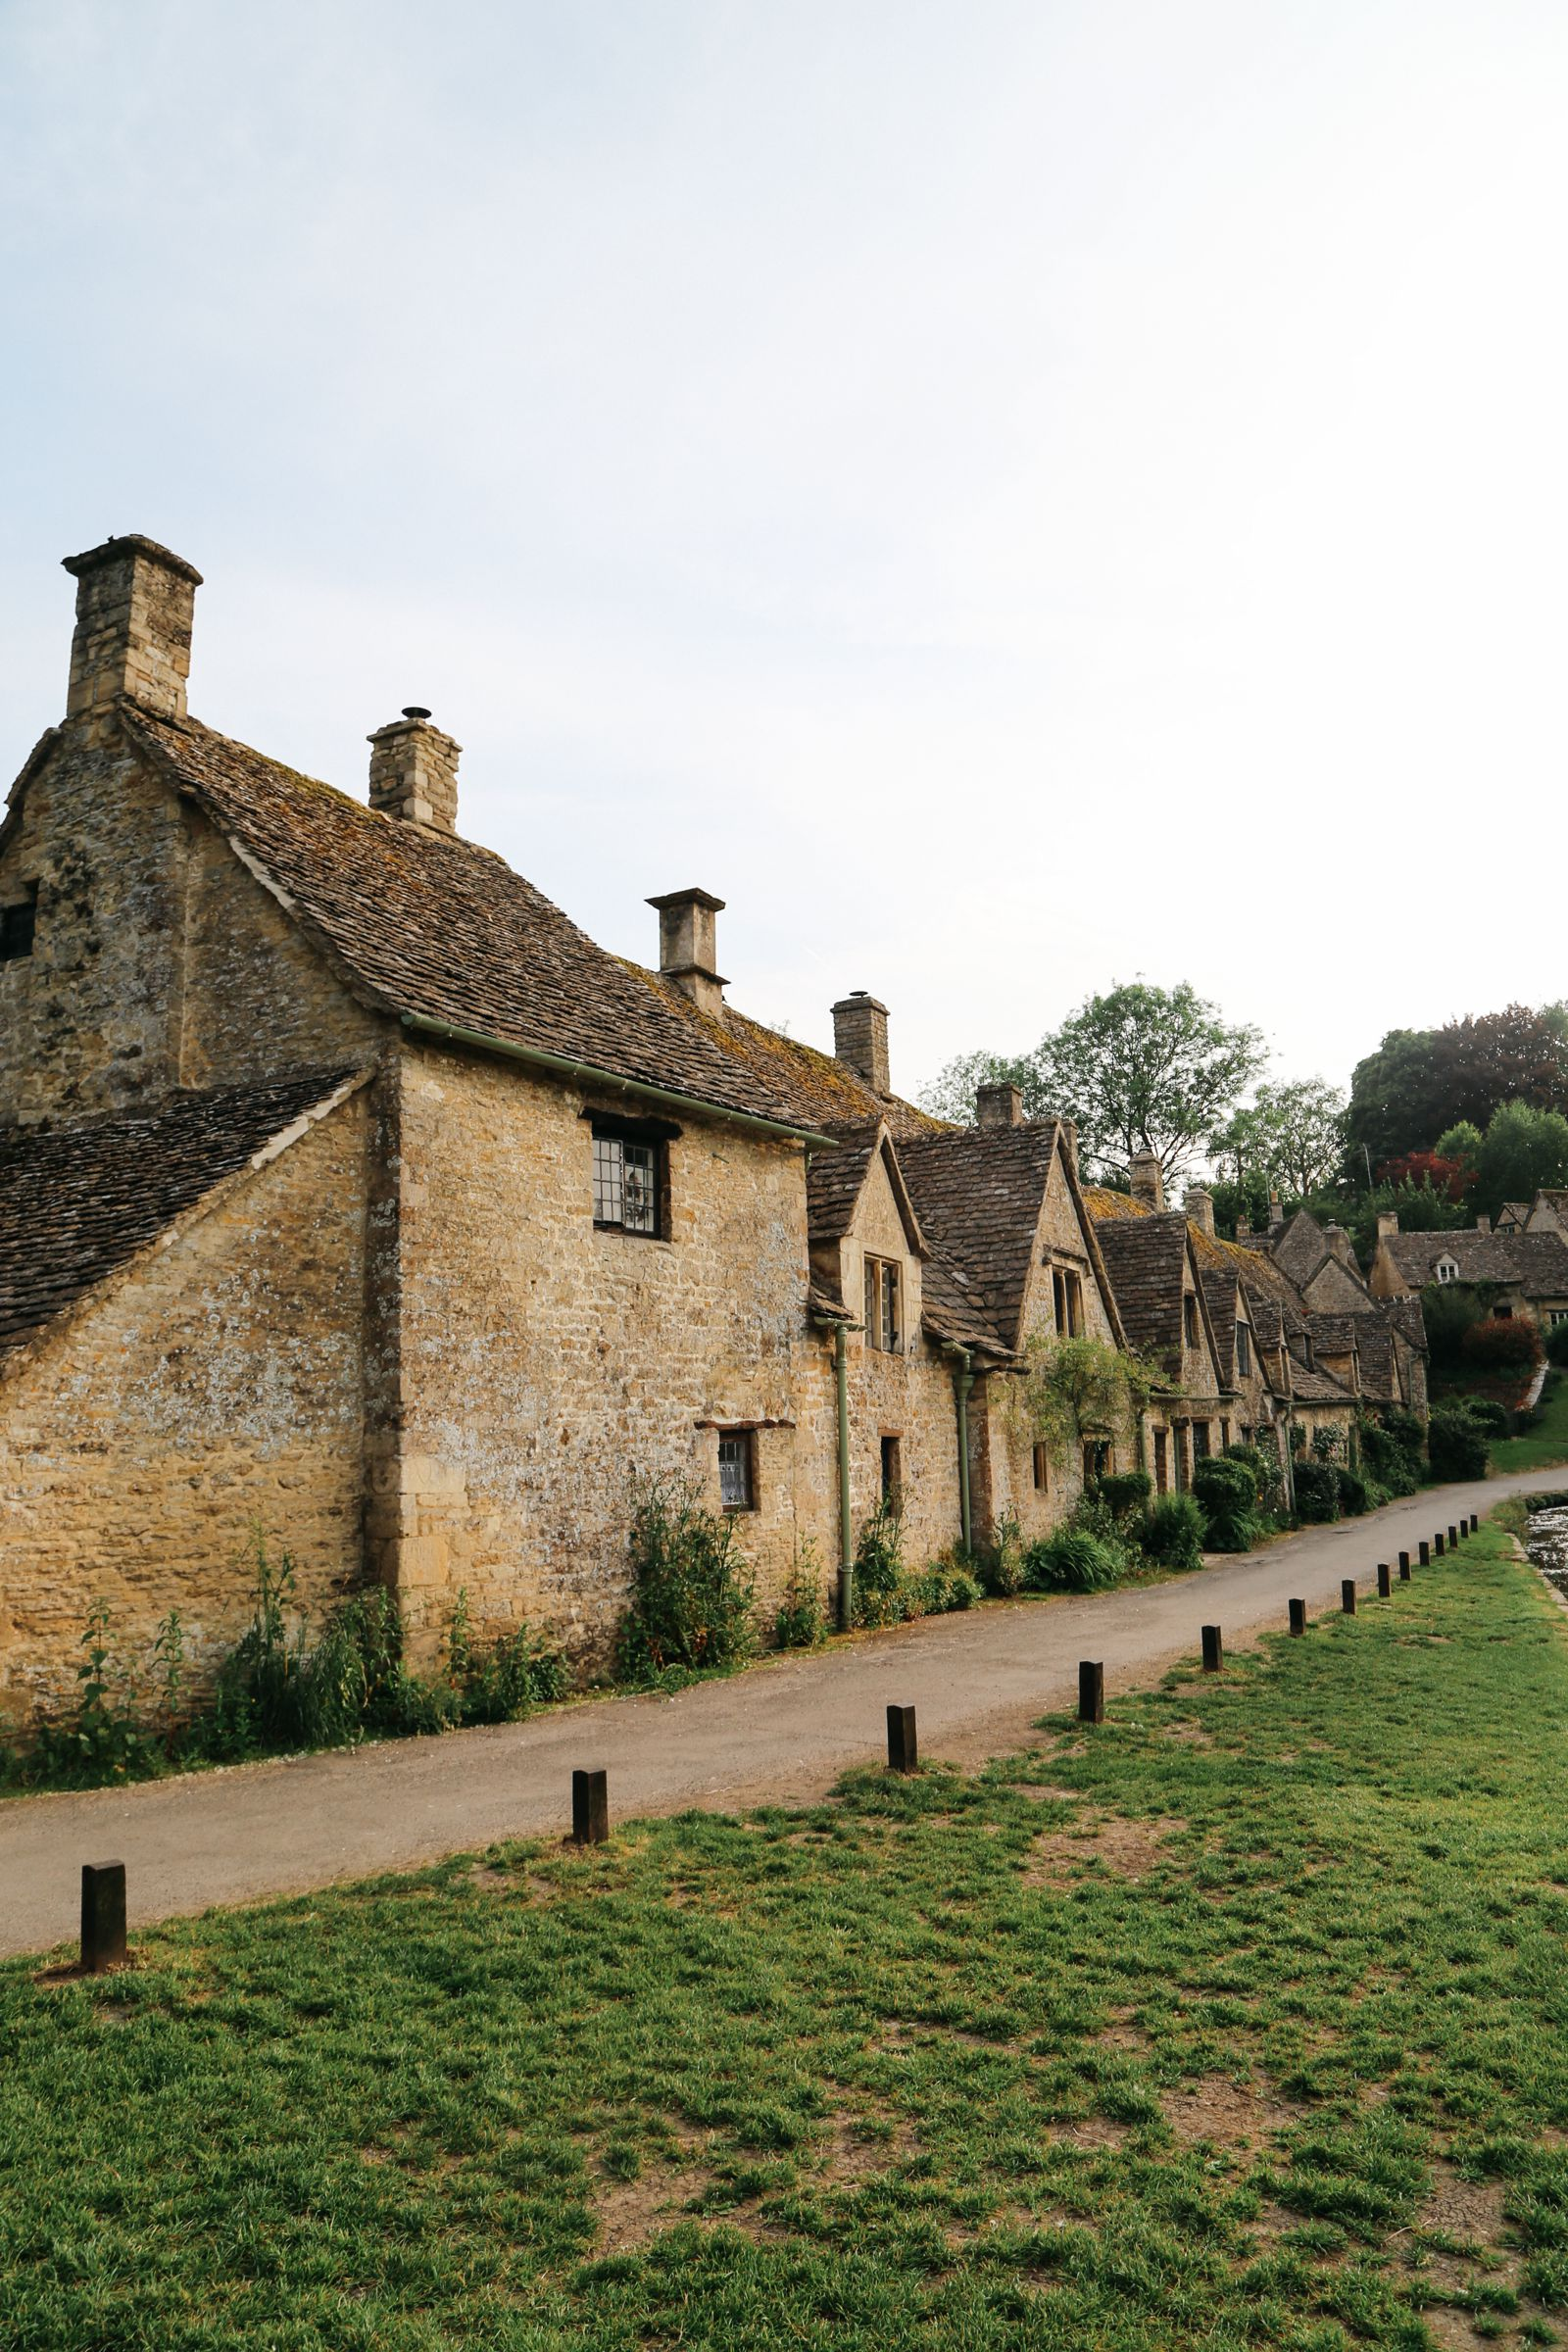 In Search Of The Most Beautiful Street In England - Arlington Row, Bibury (8)